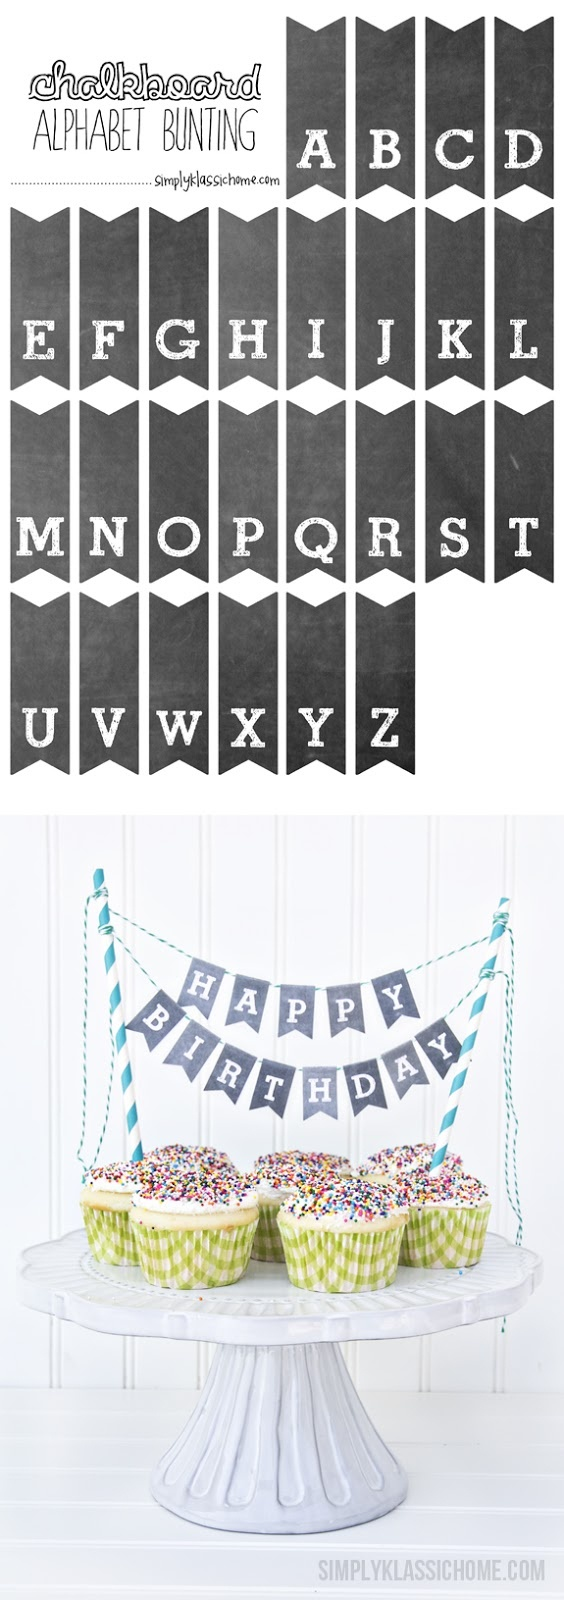 Printable Chalkboard Letters Cake Bunting - Yellow Bliss Road - Free Printable Cake Banner Templates